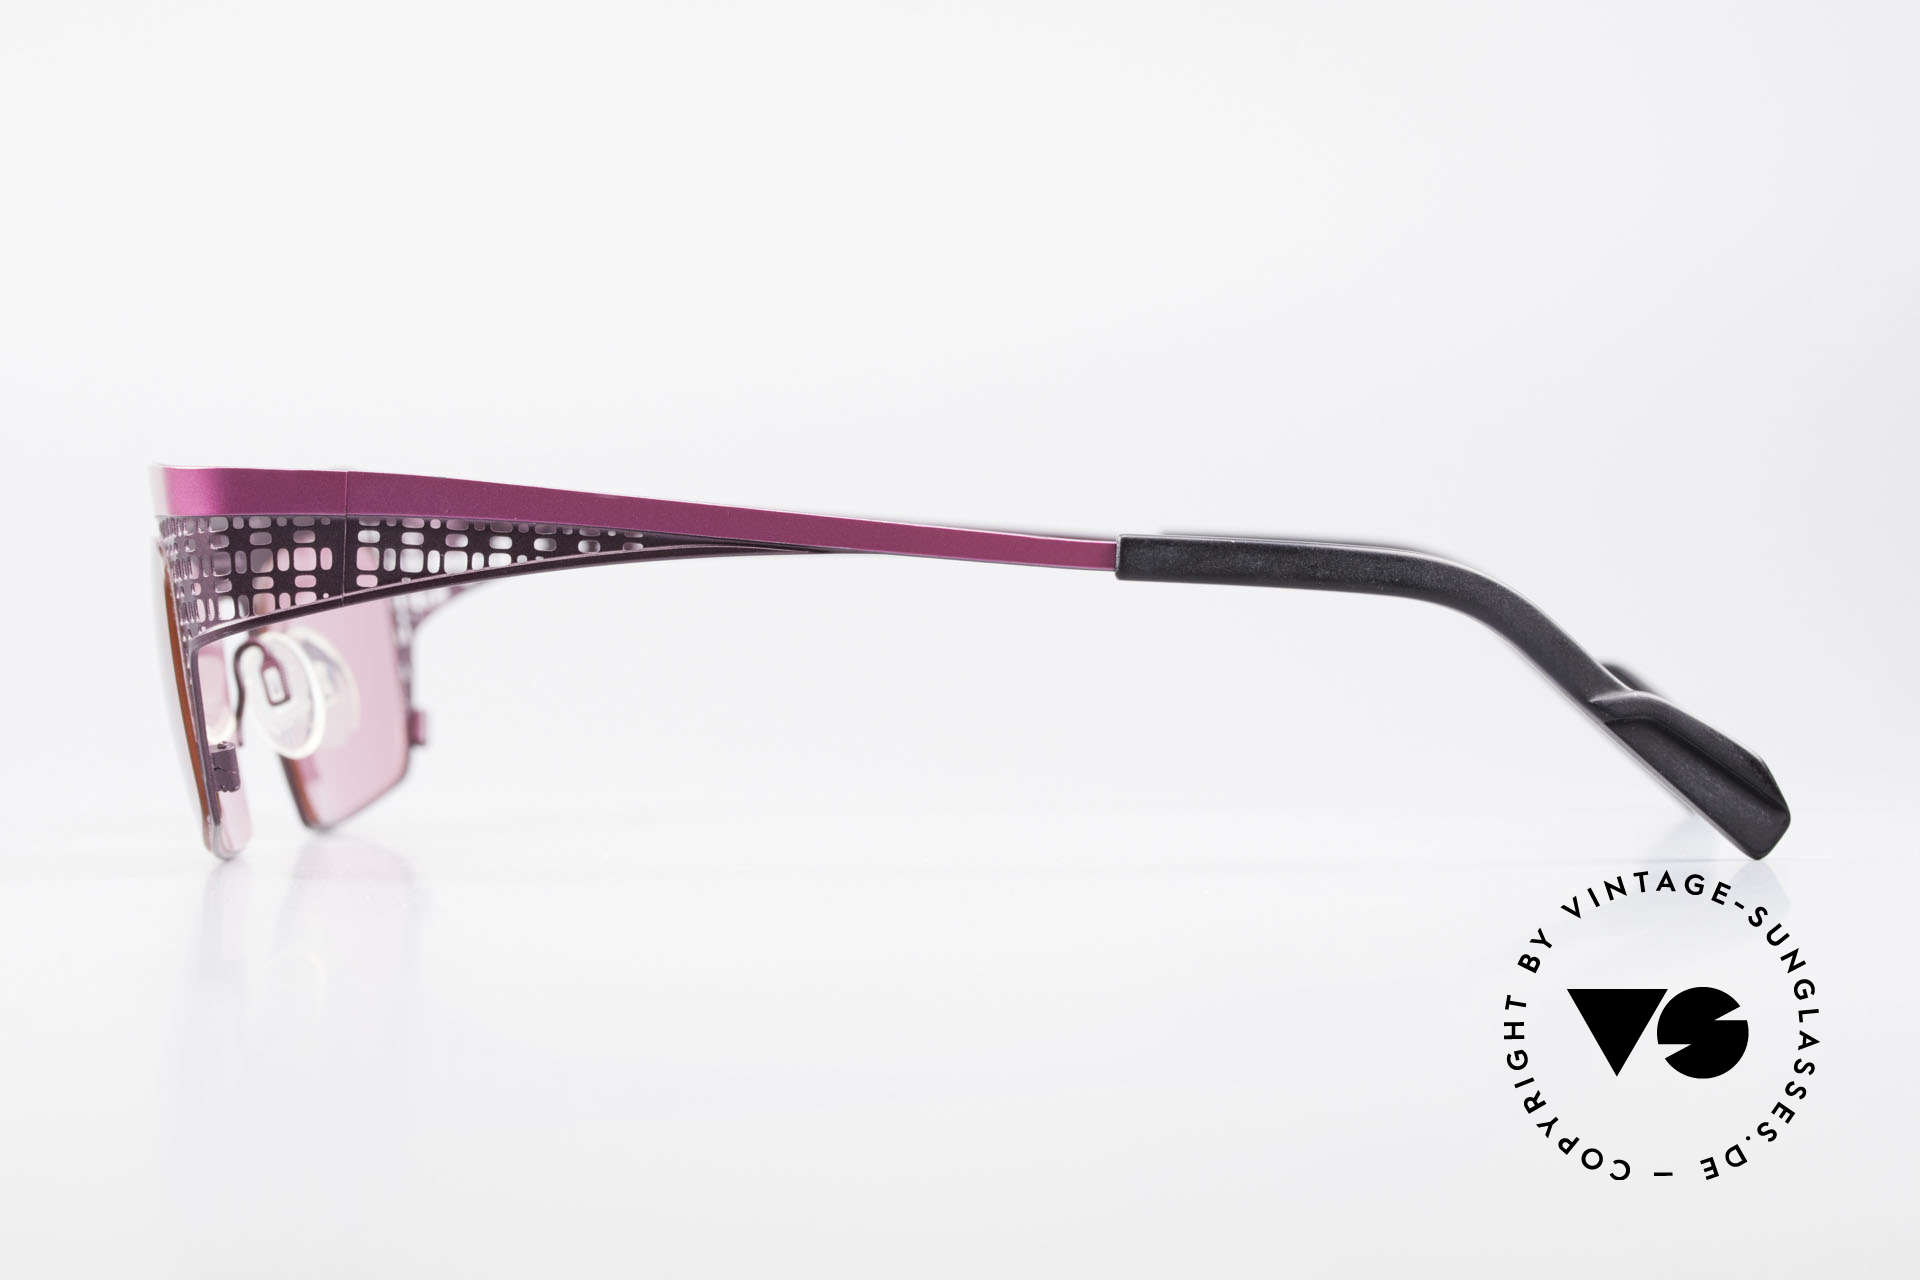 Theo Belgium Eye-Witness TA Avant-Garde Sunglasses Pink, the 1st 'Eye-Witness' series was launched in May 1995, Made for Women